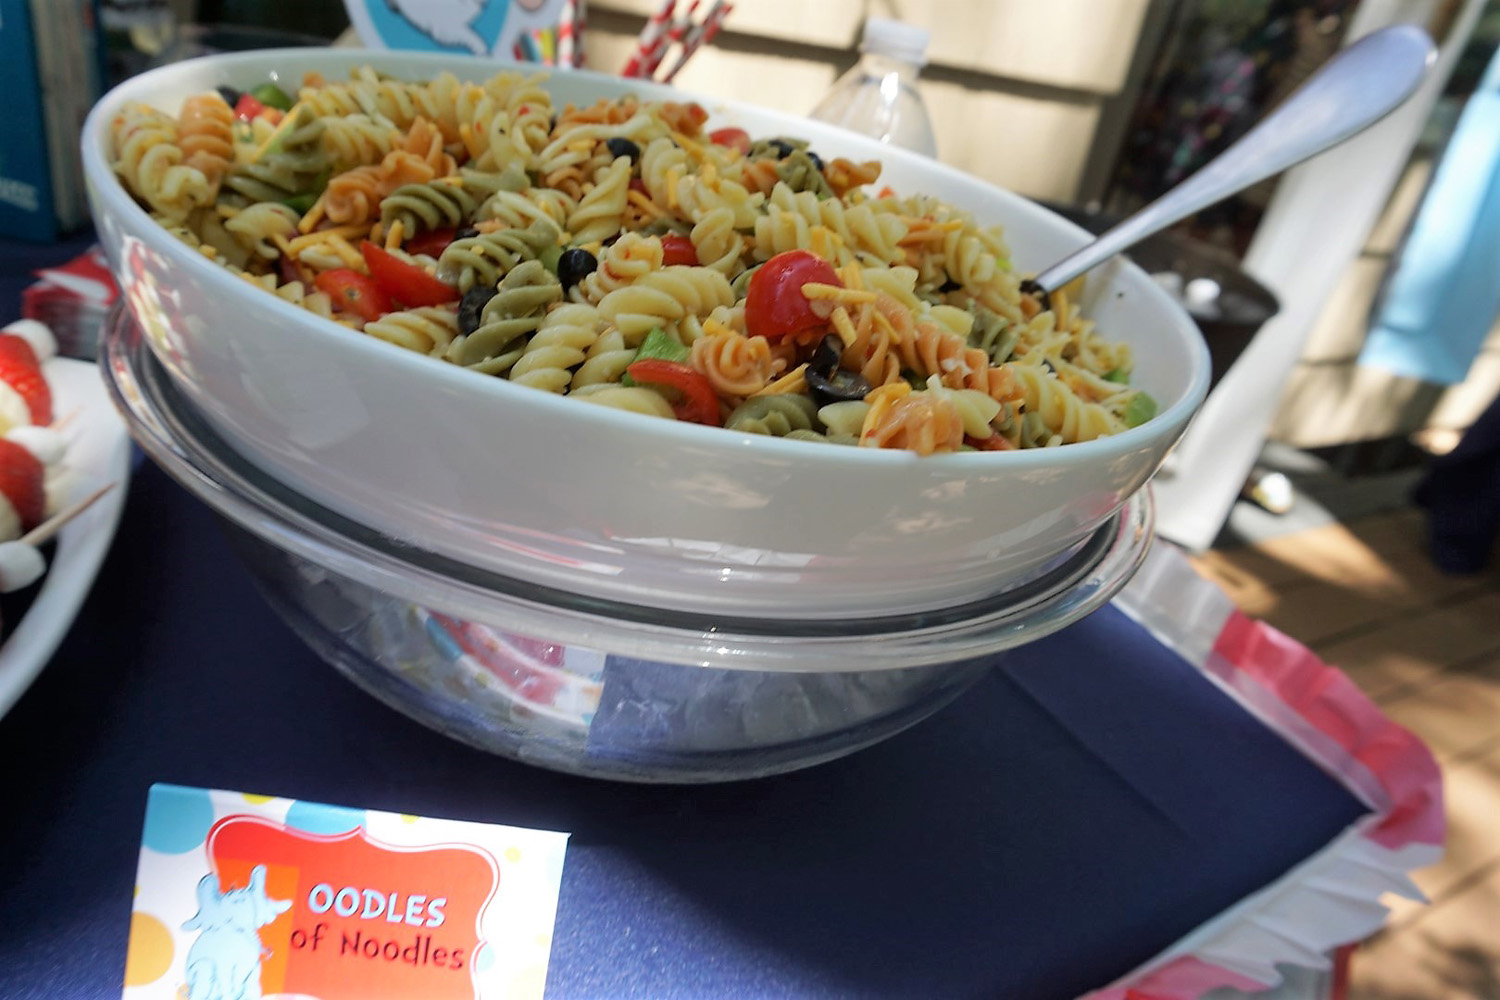 Oodles of Noodles pasta salad for a Dr. Seuss themed party